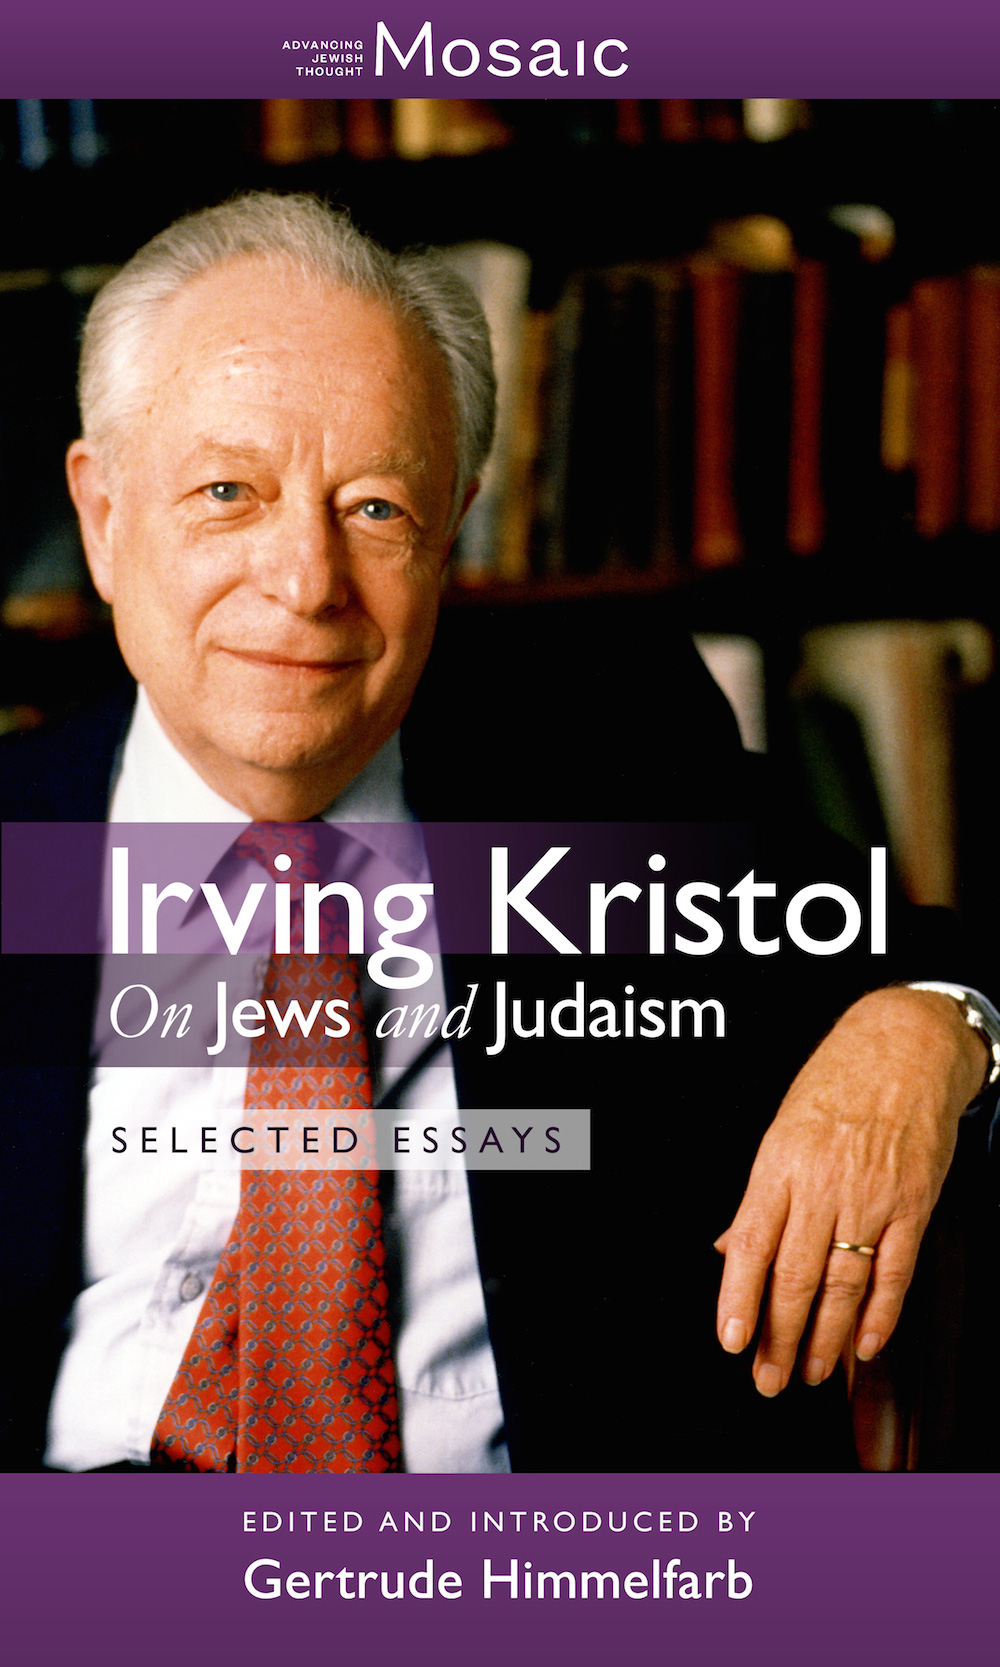 on jews and judaism selected essays acirc mosaic